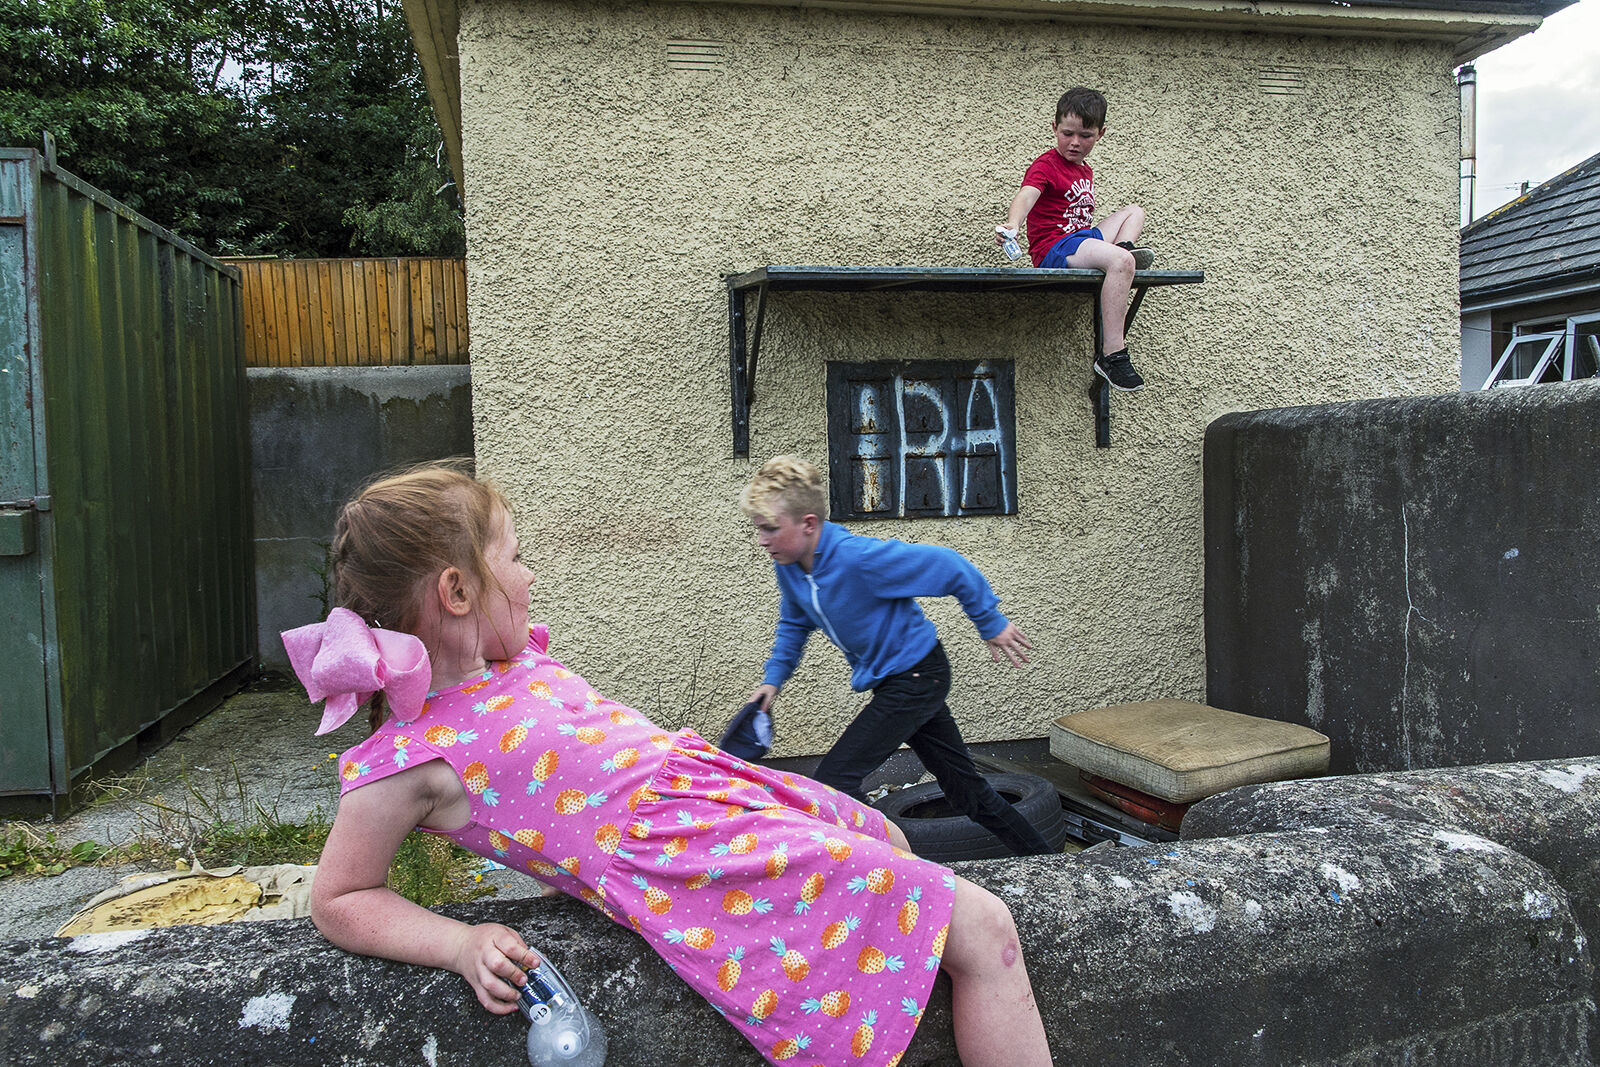 Connors Children Playing, Wexford, Ireland 2019